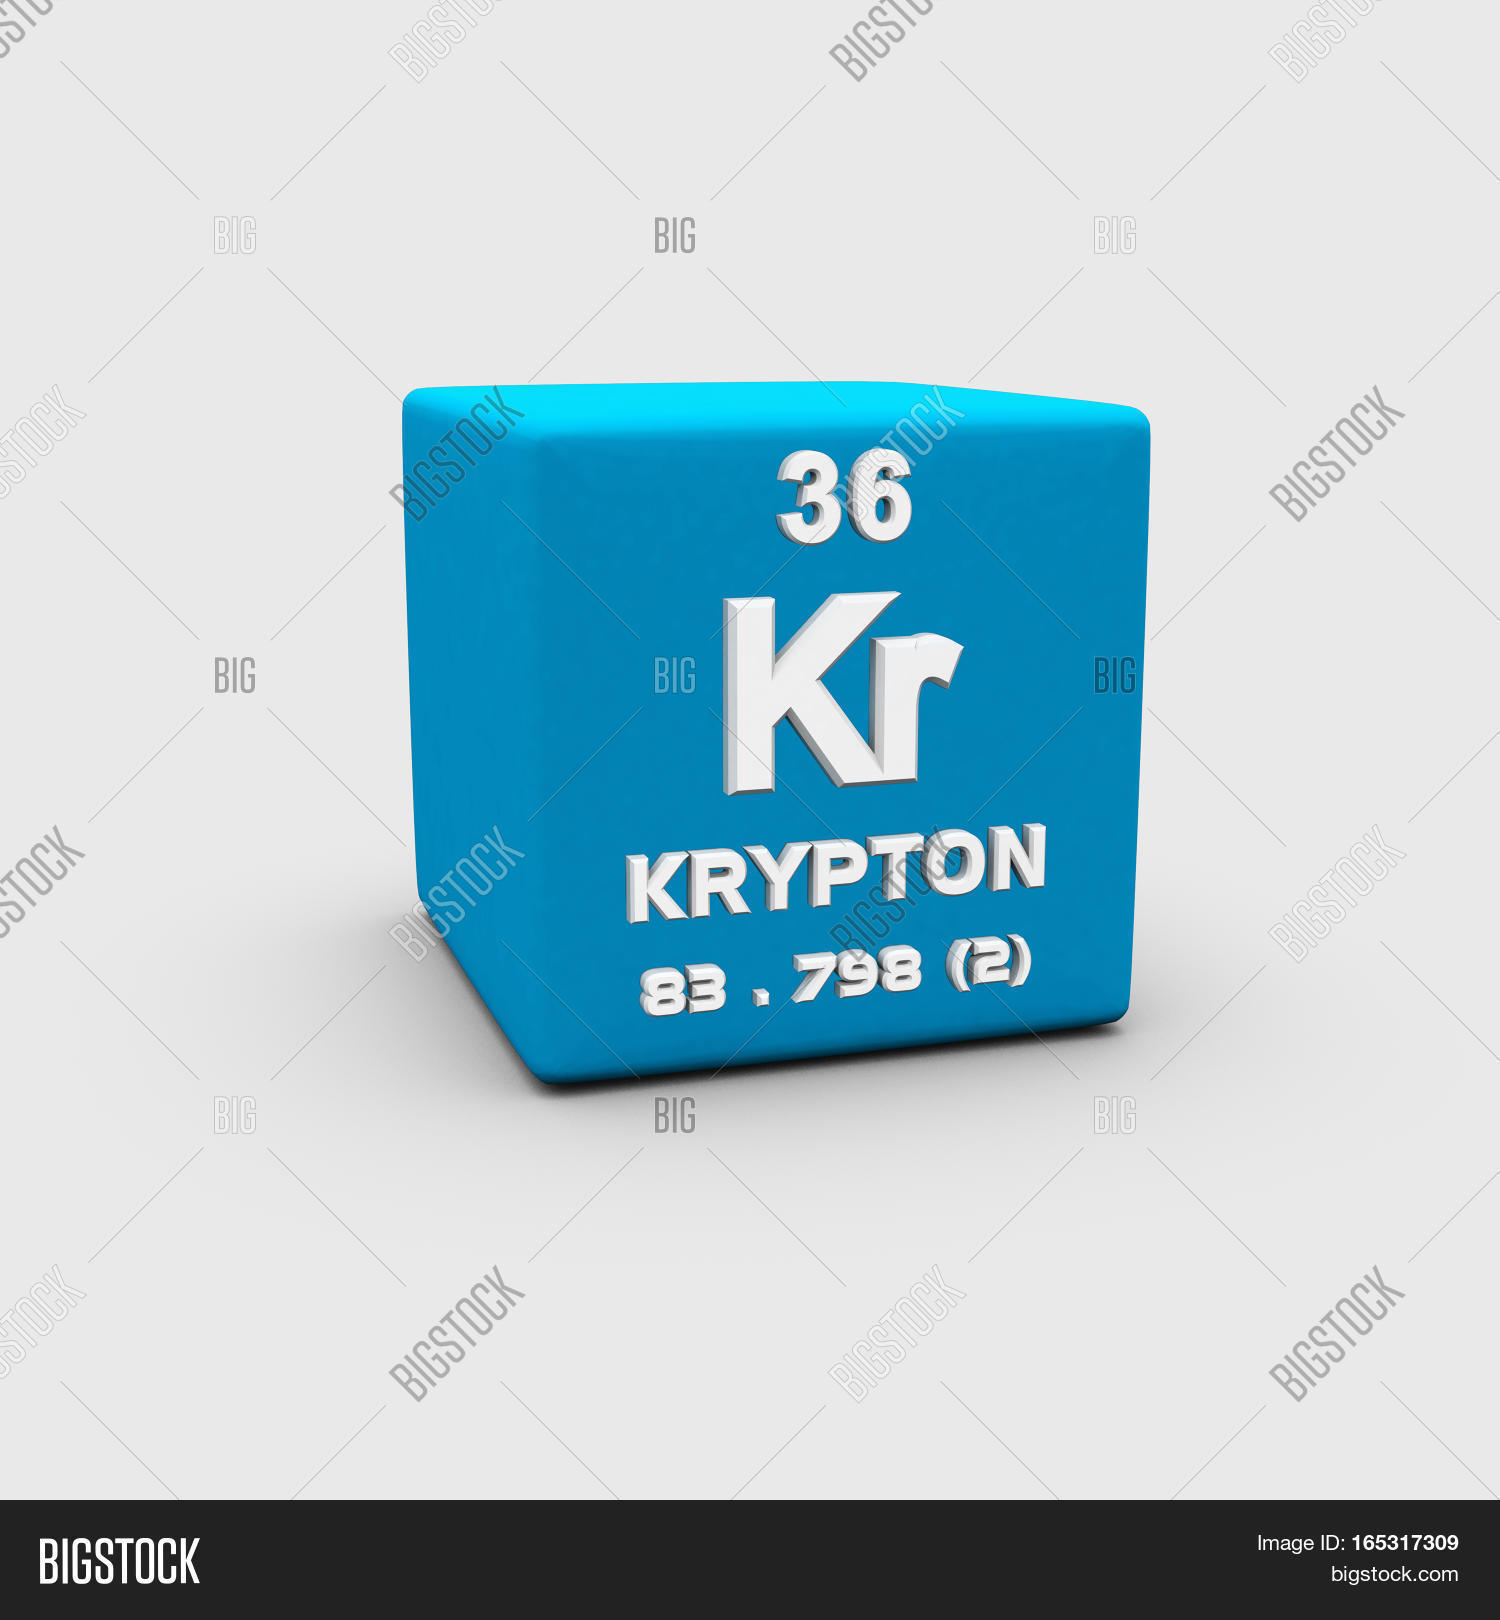 Krypton chemical element symbol kr image photo bigstock krypton is a chemical element with symbol kr and atomic number 36 buycottarizona